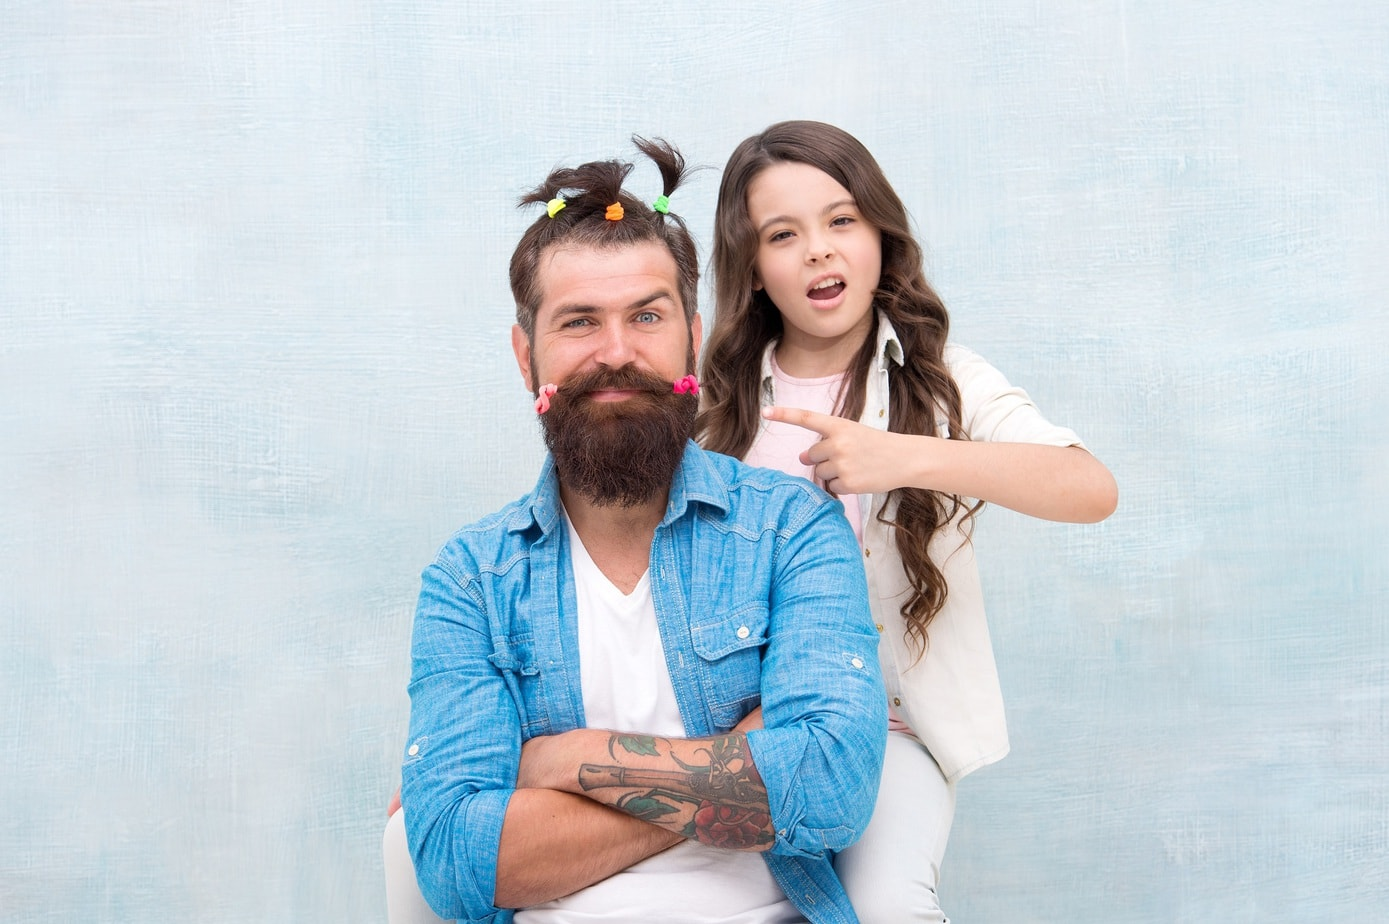 Making me happy. Daughter creating fathers hair. Handsome father with little girl. Happy father and daughter. little girl love her daddy. happy fathers day. family. Fathers day with daughter at home